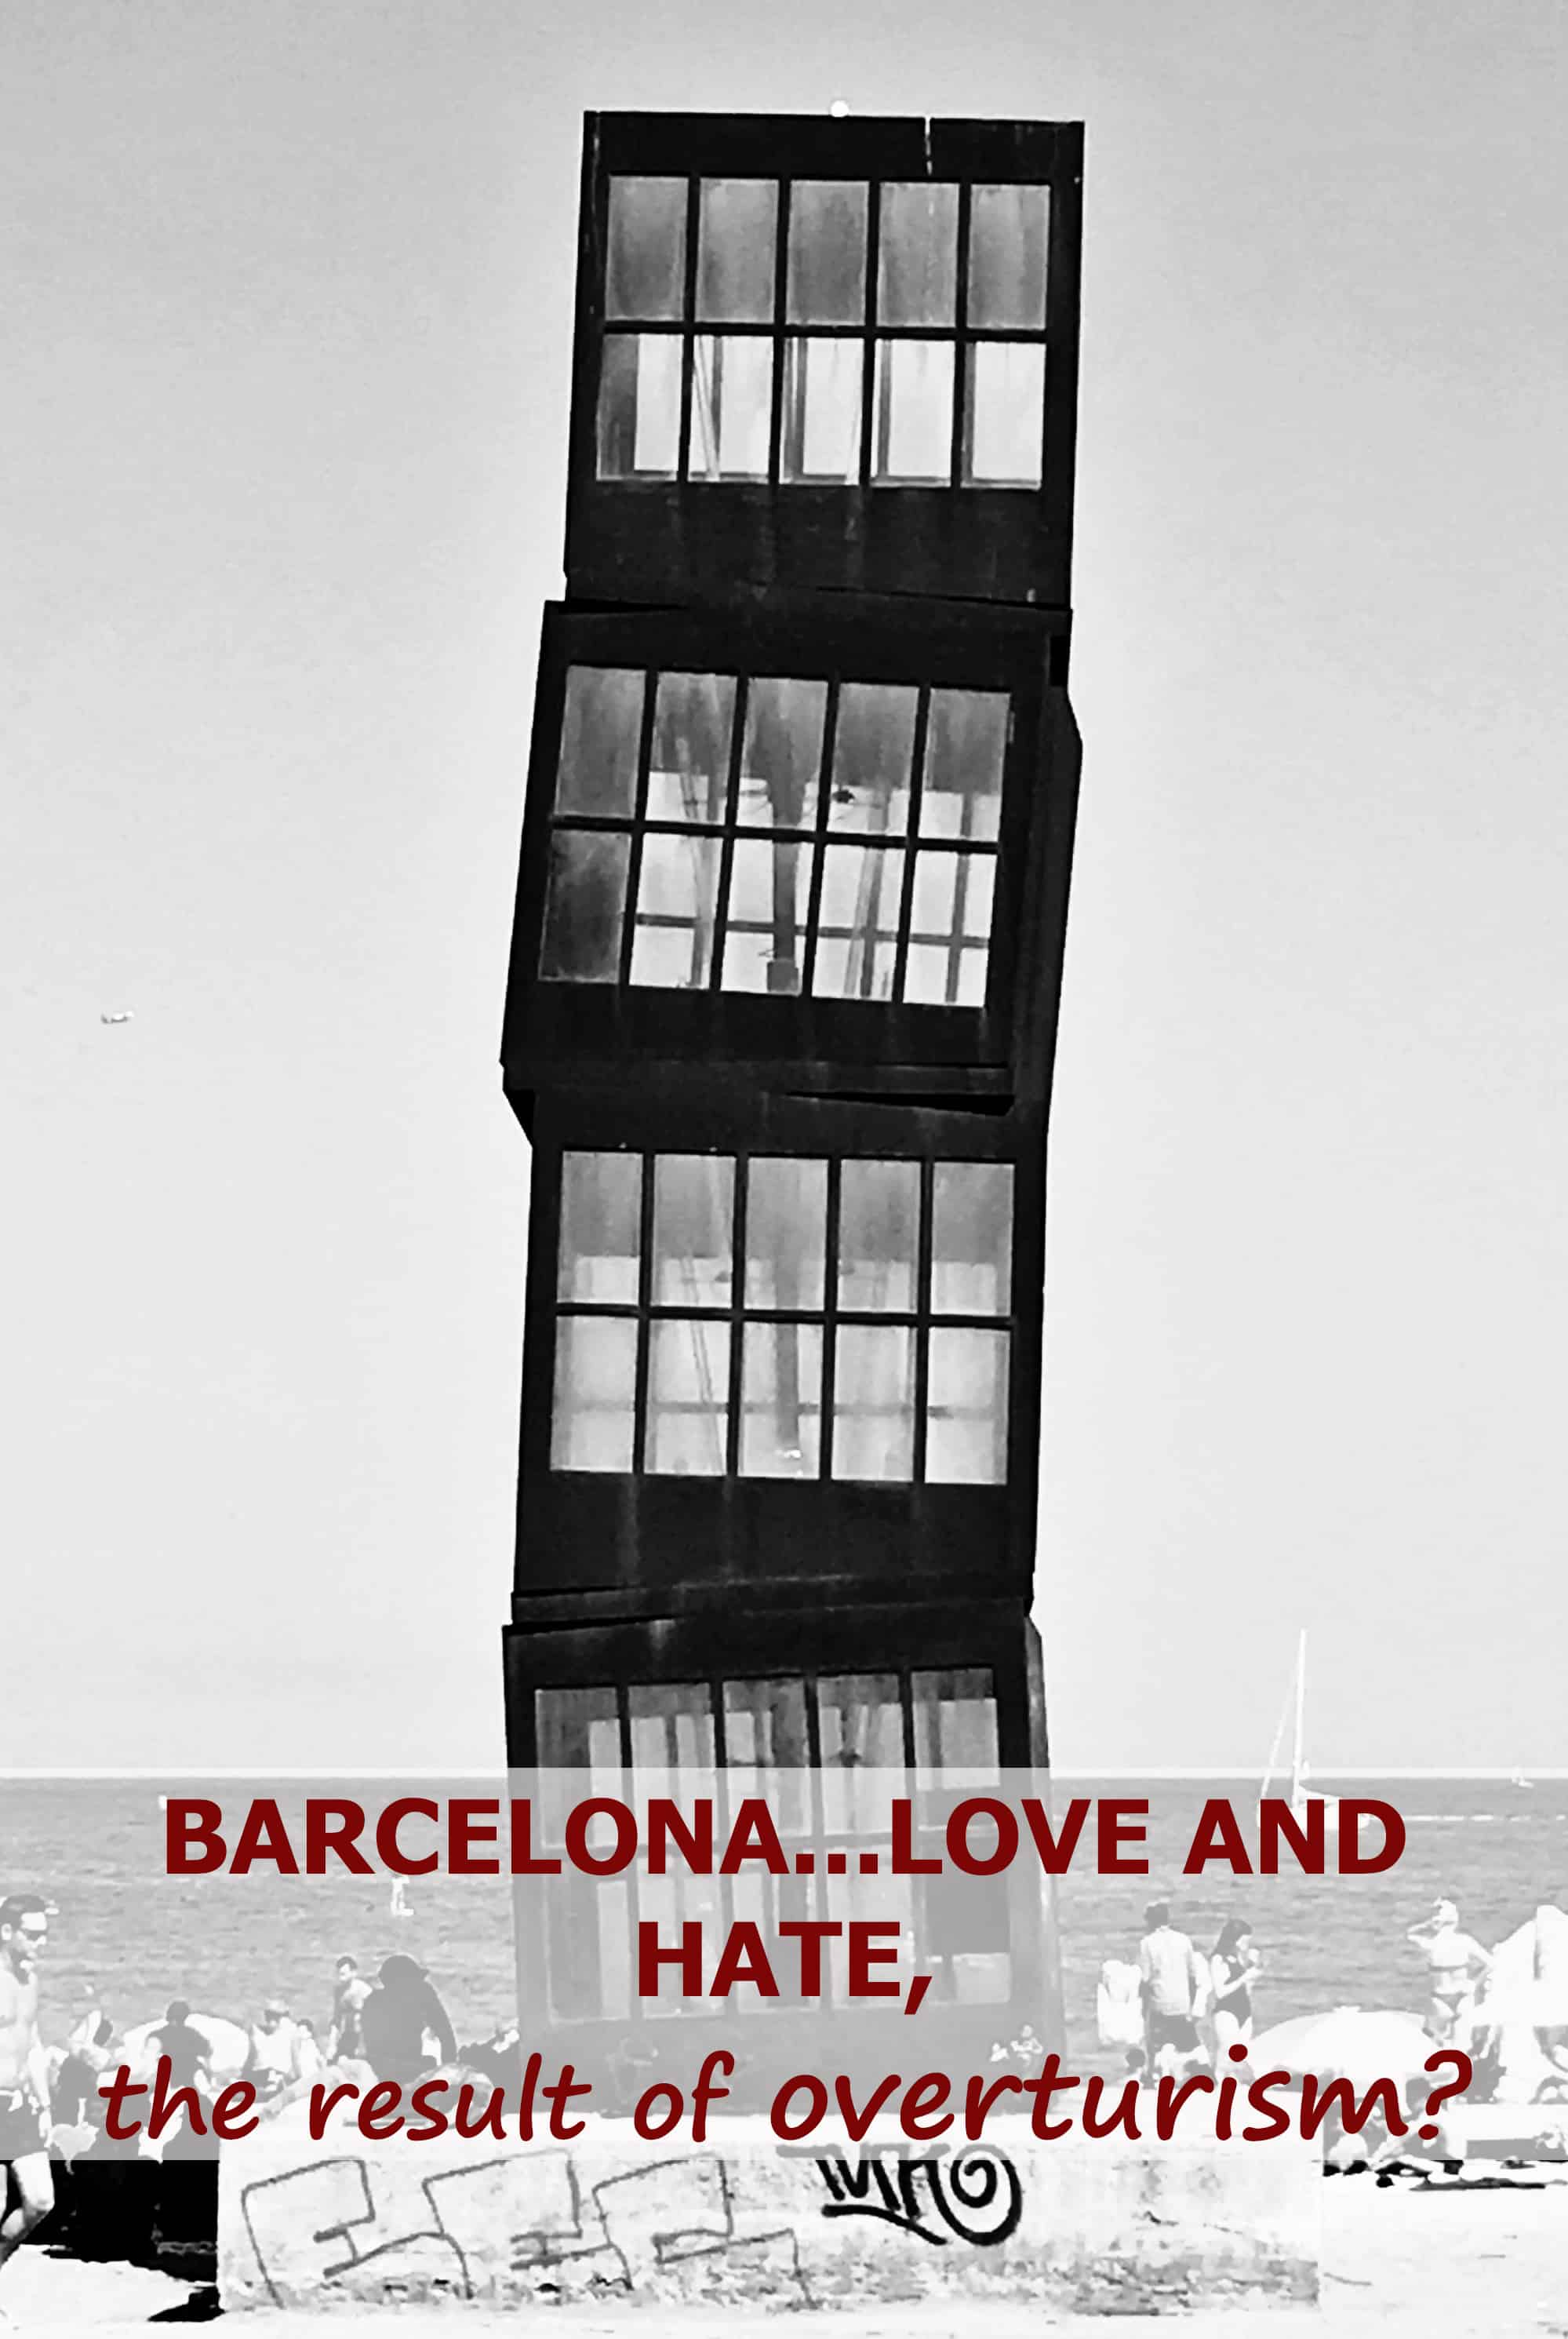 Have you been in Barcelona more than 10 years ago and are you planning a new visit? read my reflection so you know what to expect now!